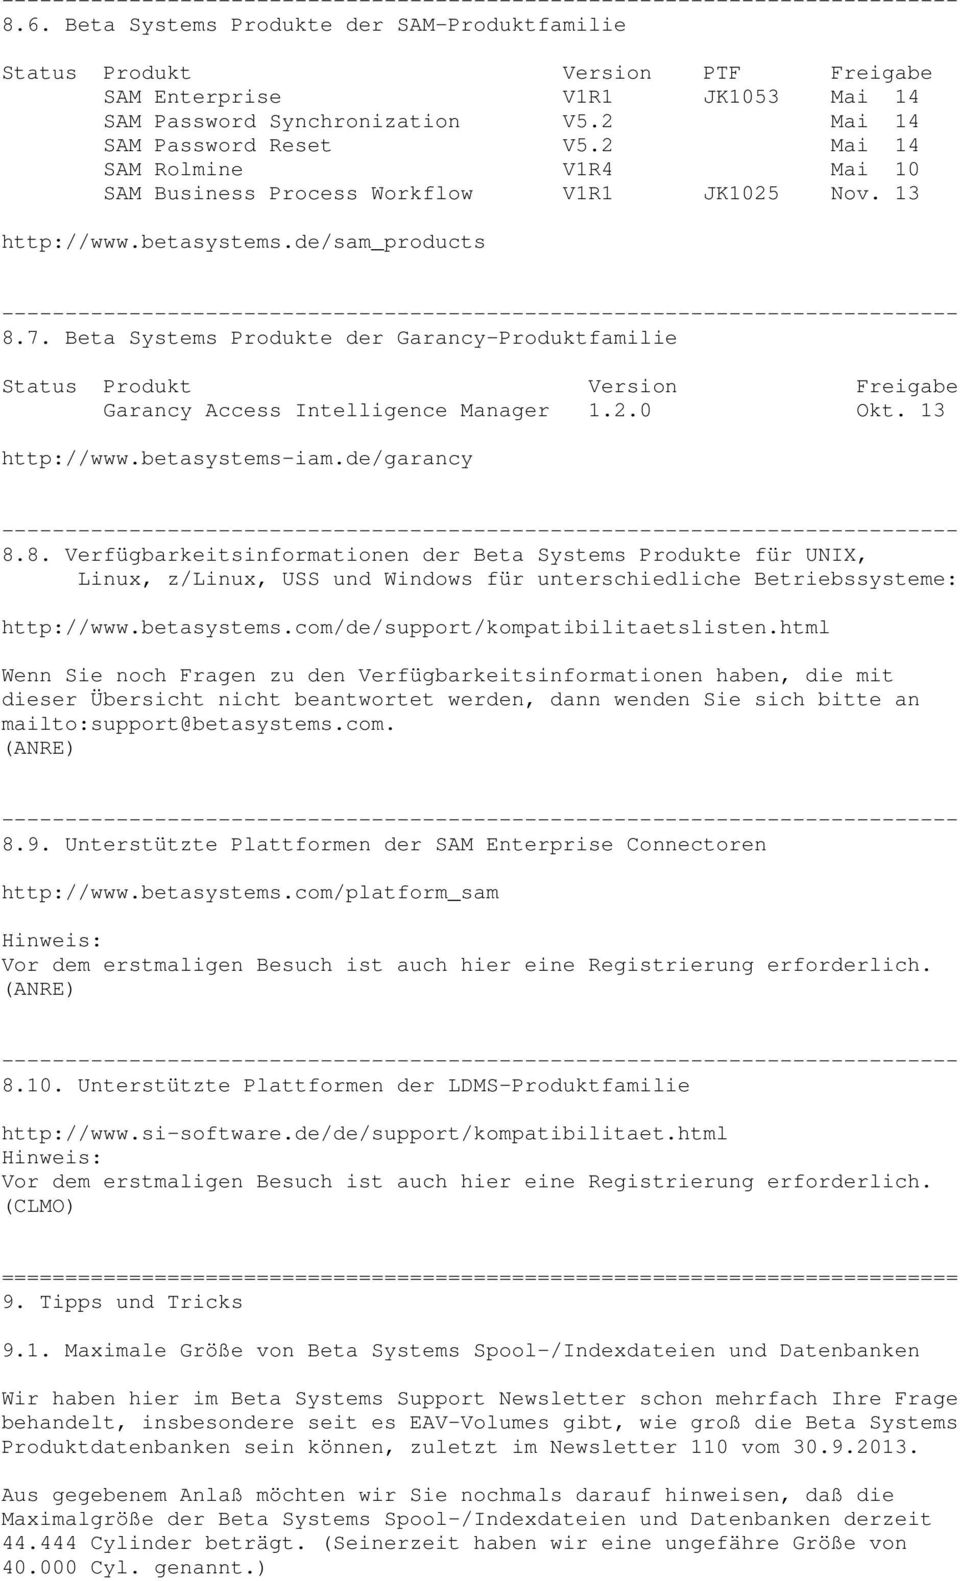 Beta Systems Produkte der Garancy-Produktfamilie Status Produkt Version Freigabe Garancy Access Intelligence Manager 1.2.0 Okt. 13 http://www.betasystems-iam.de/garancy 8.